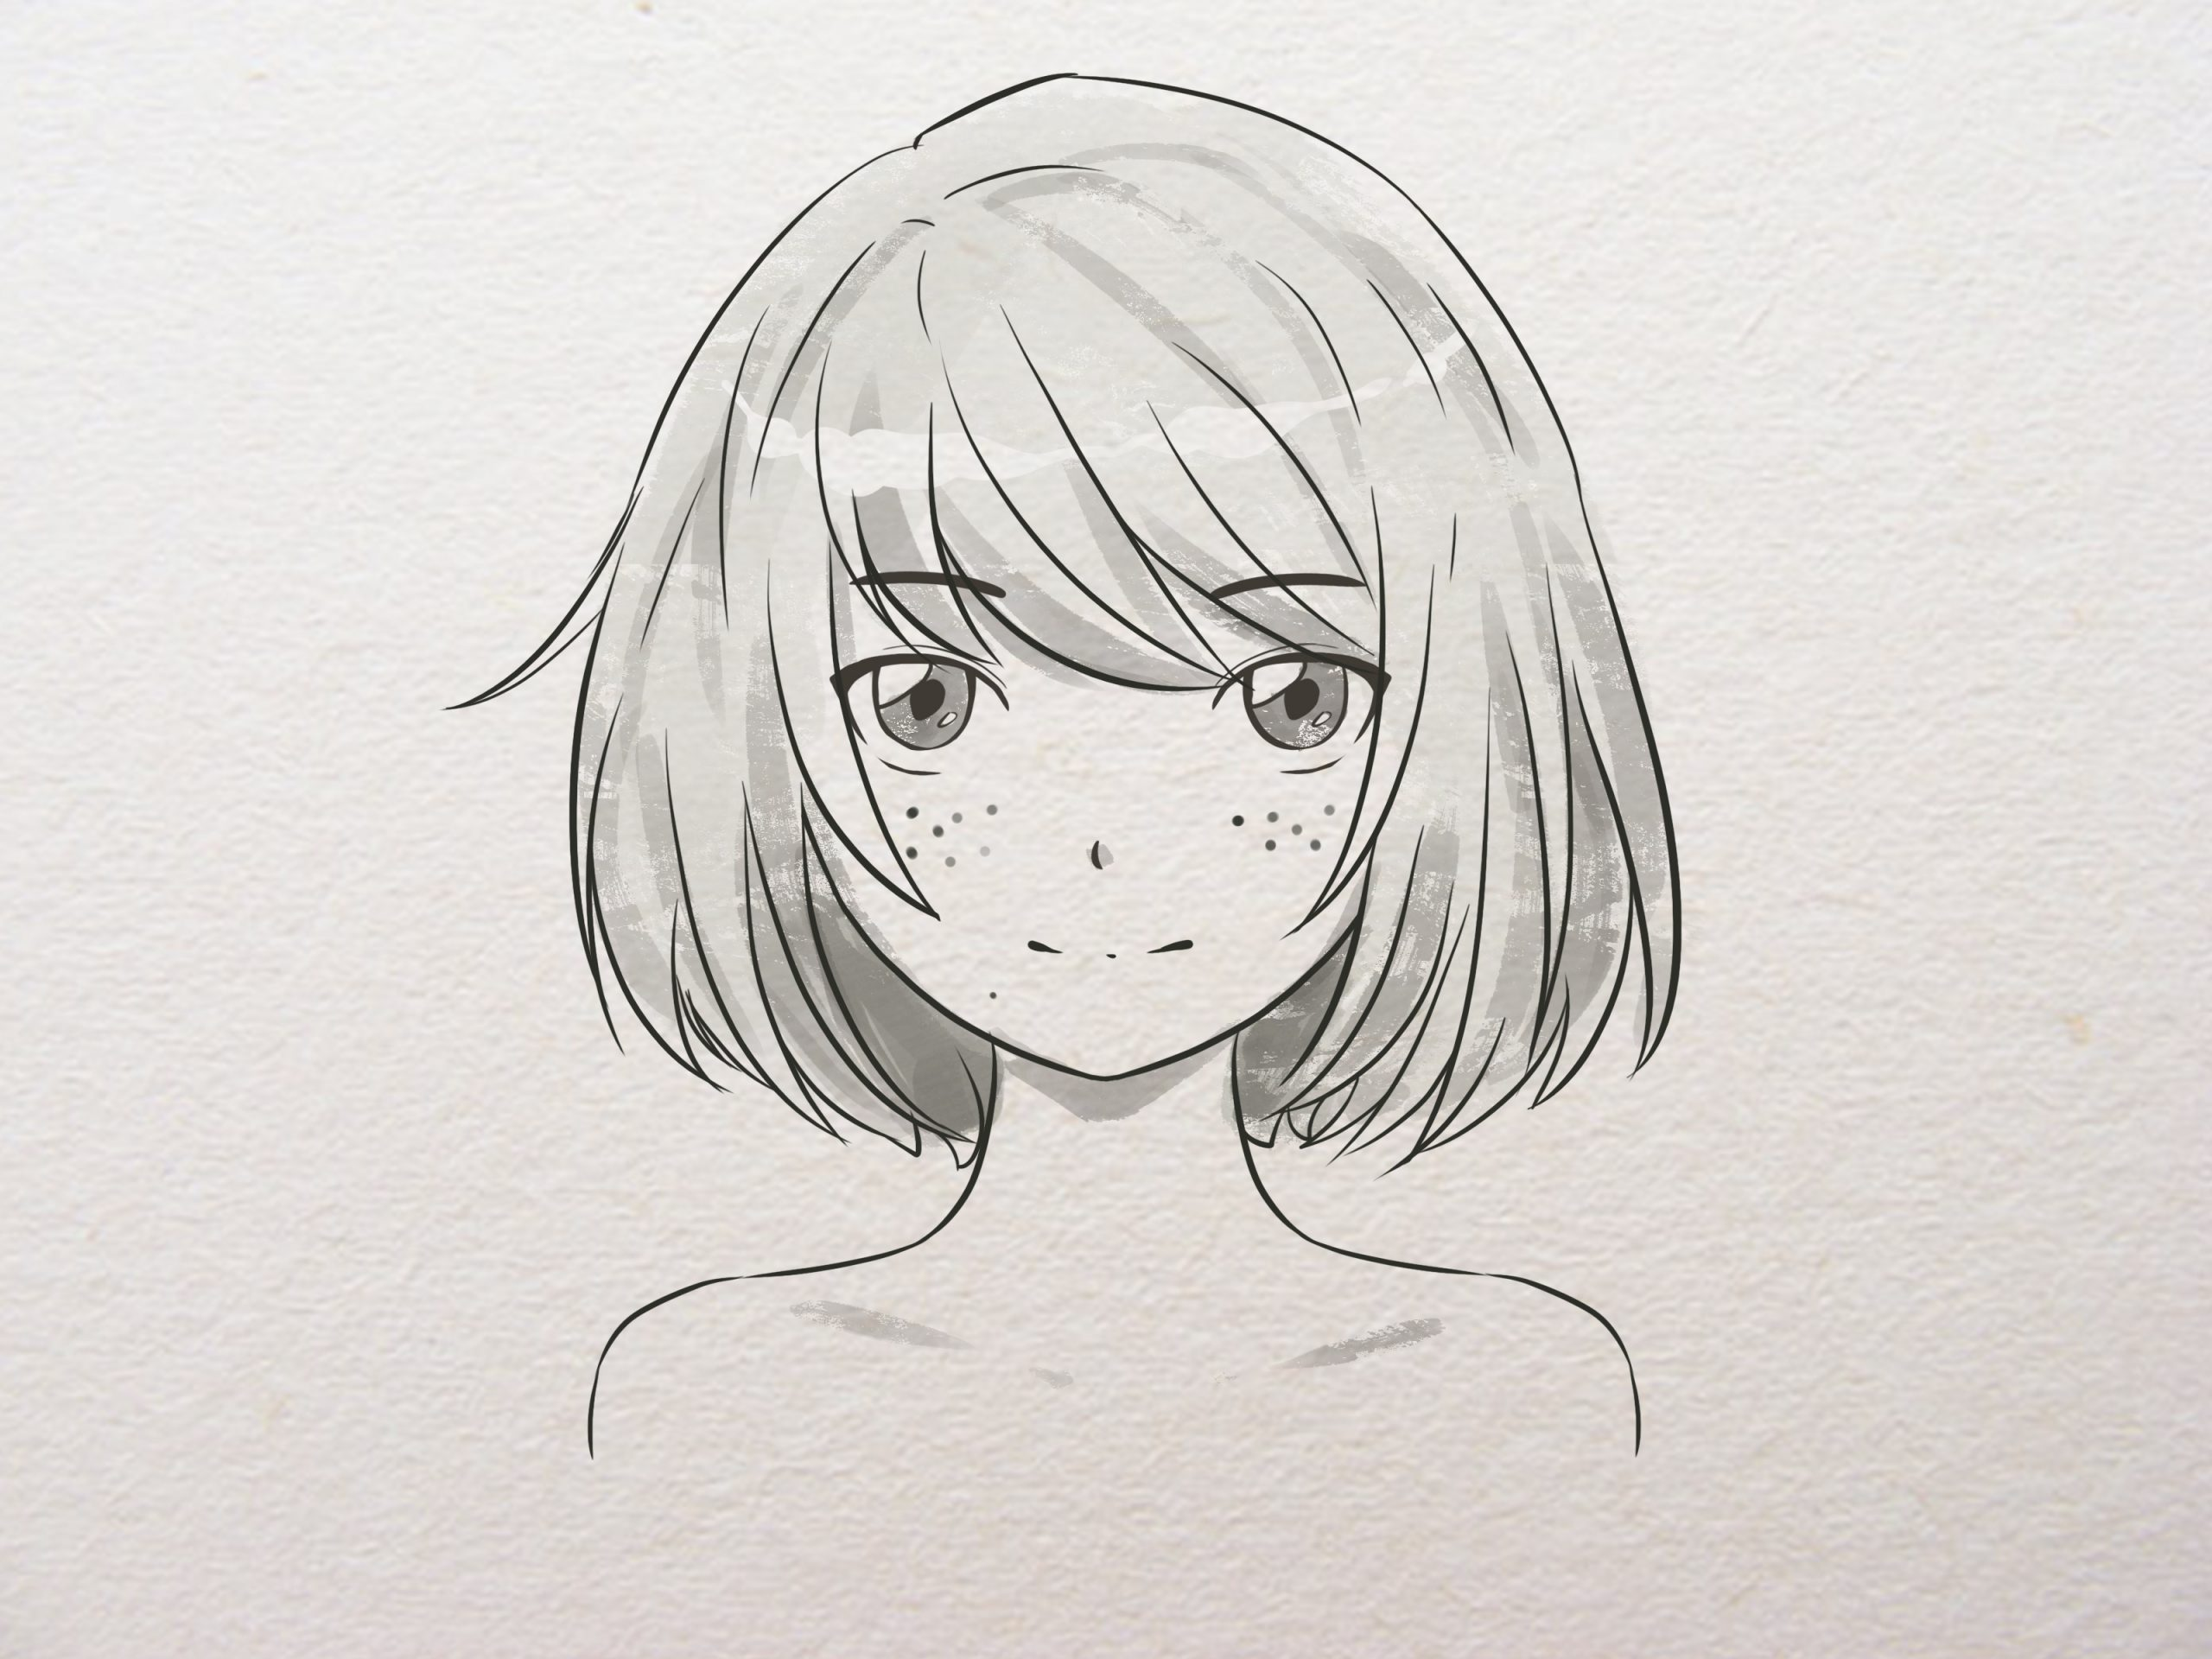 How To Draw Anime Or Manga Faces: 15 Steps (With Pictures) in How To Draw Anime Nose Step By Step